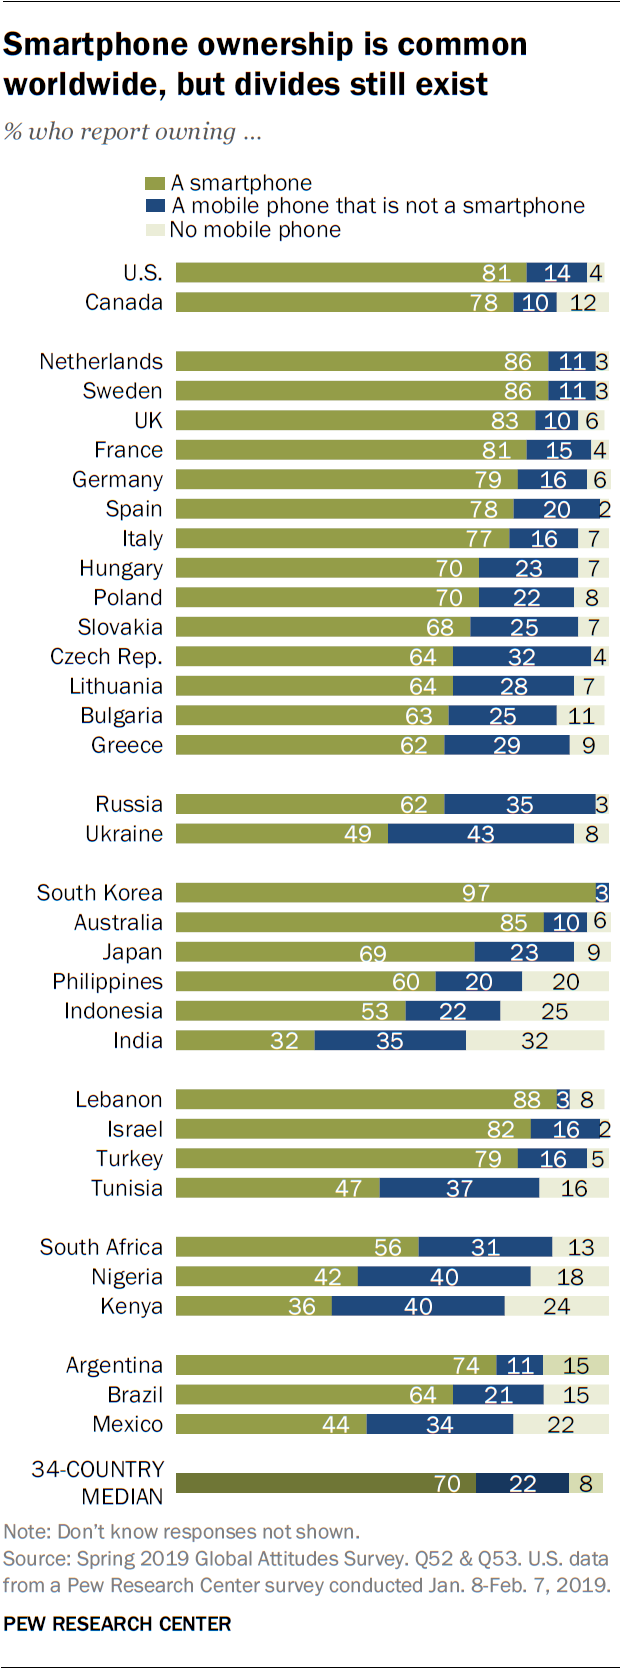 Smartphone ownership is common worldwide, but divides still exist